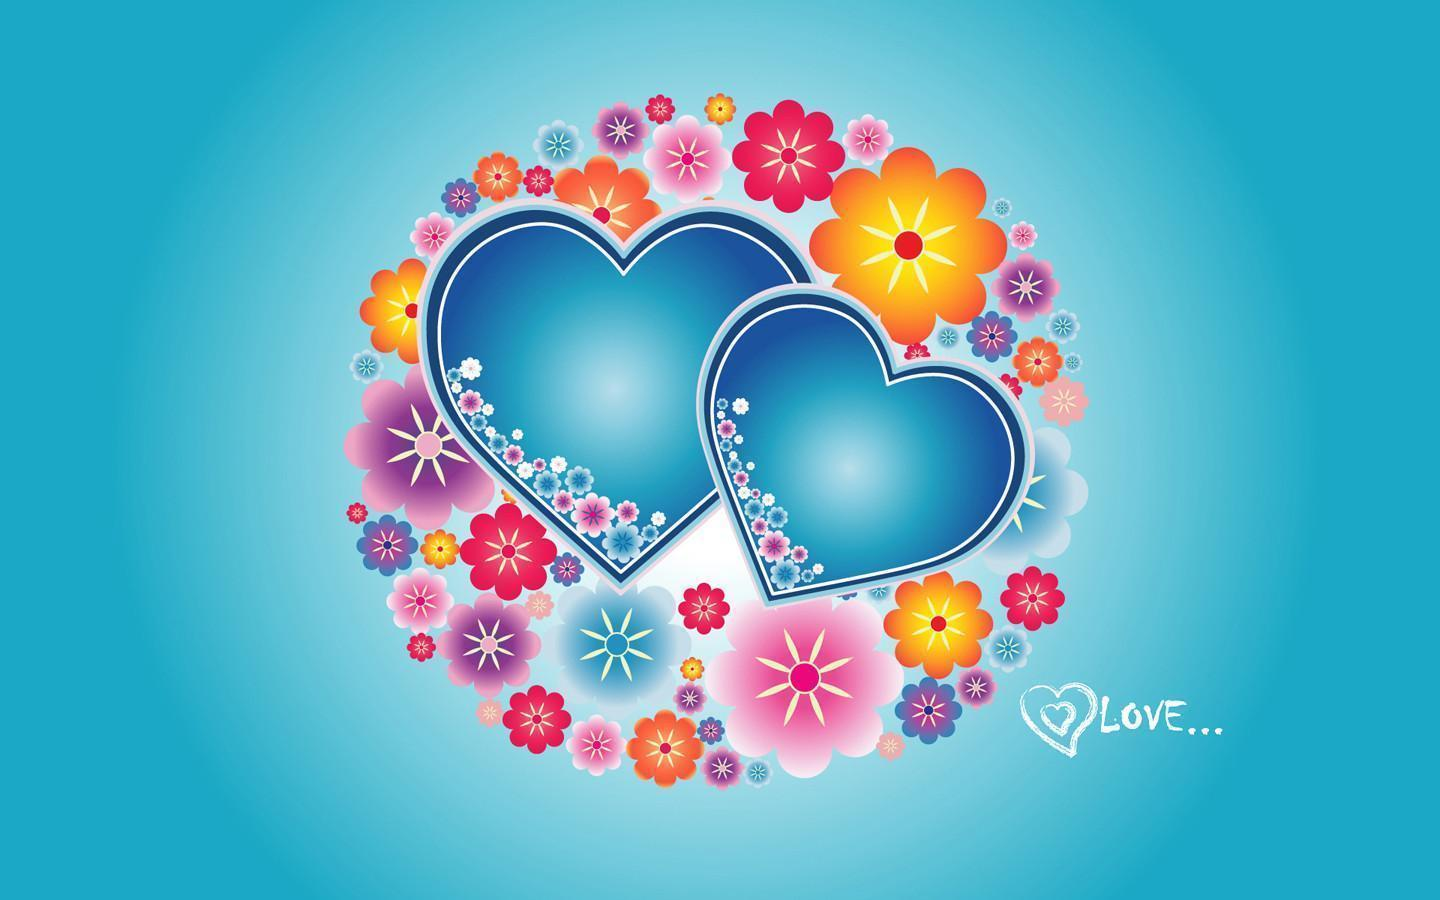 Wallpaper Images Of Love : Love Heart Wallpapers HD - Wallpaper cave